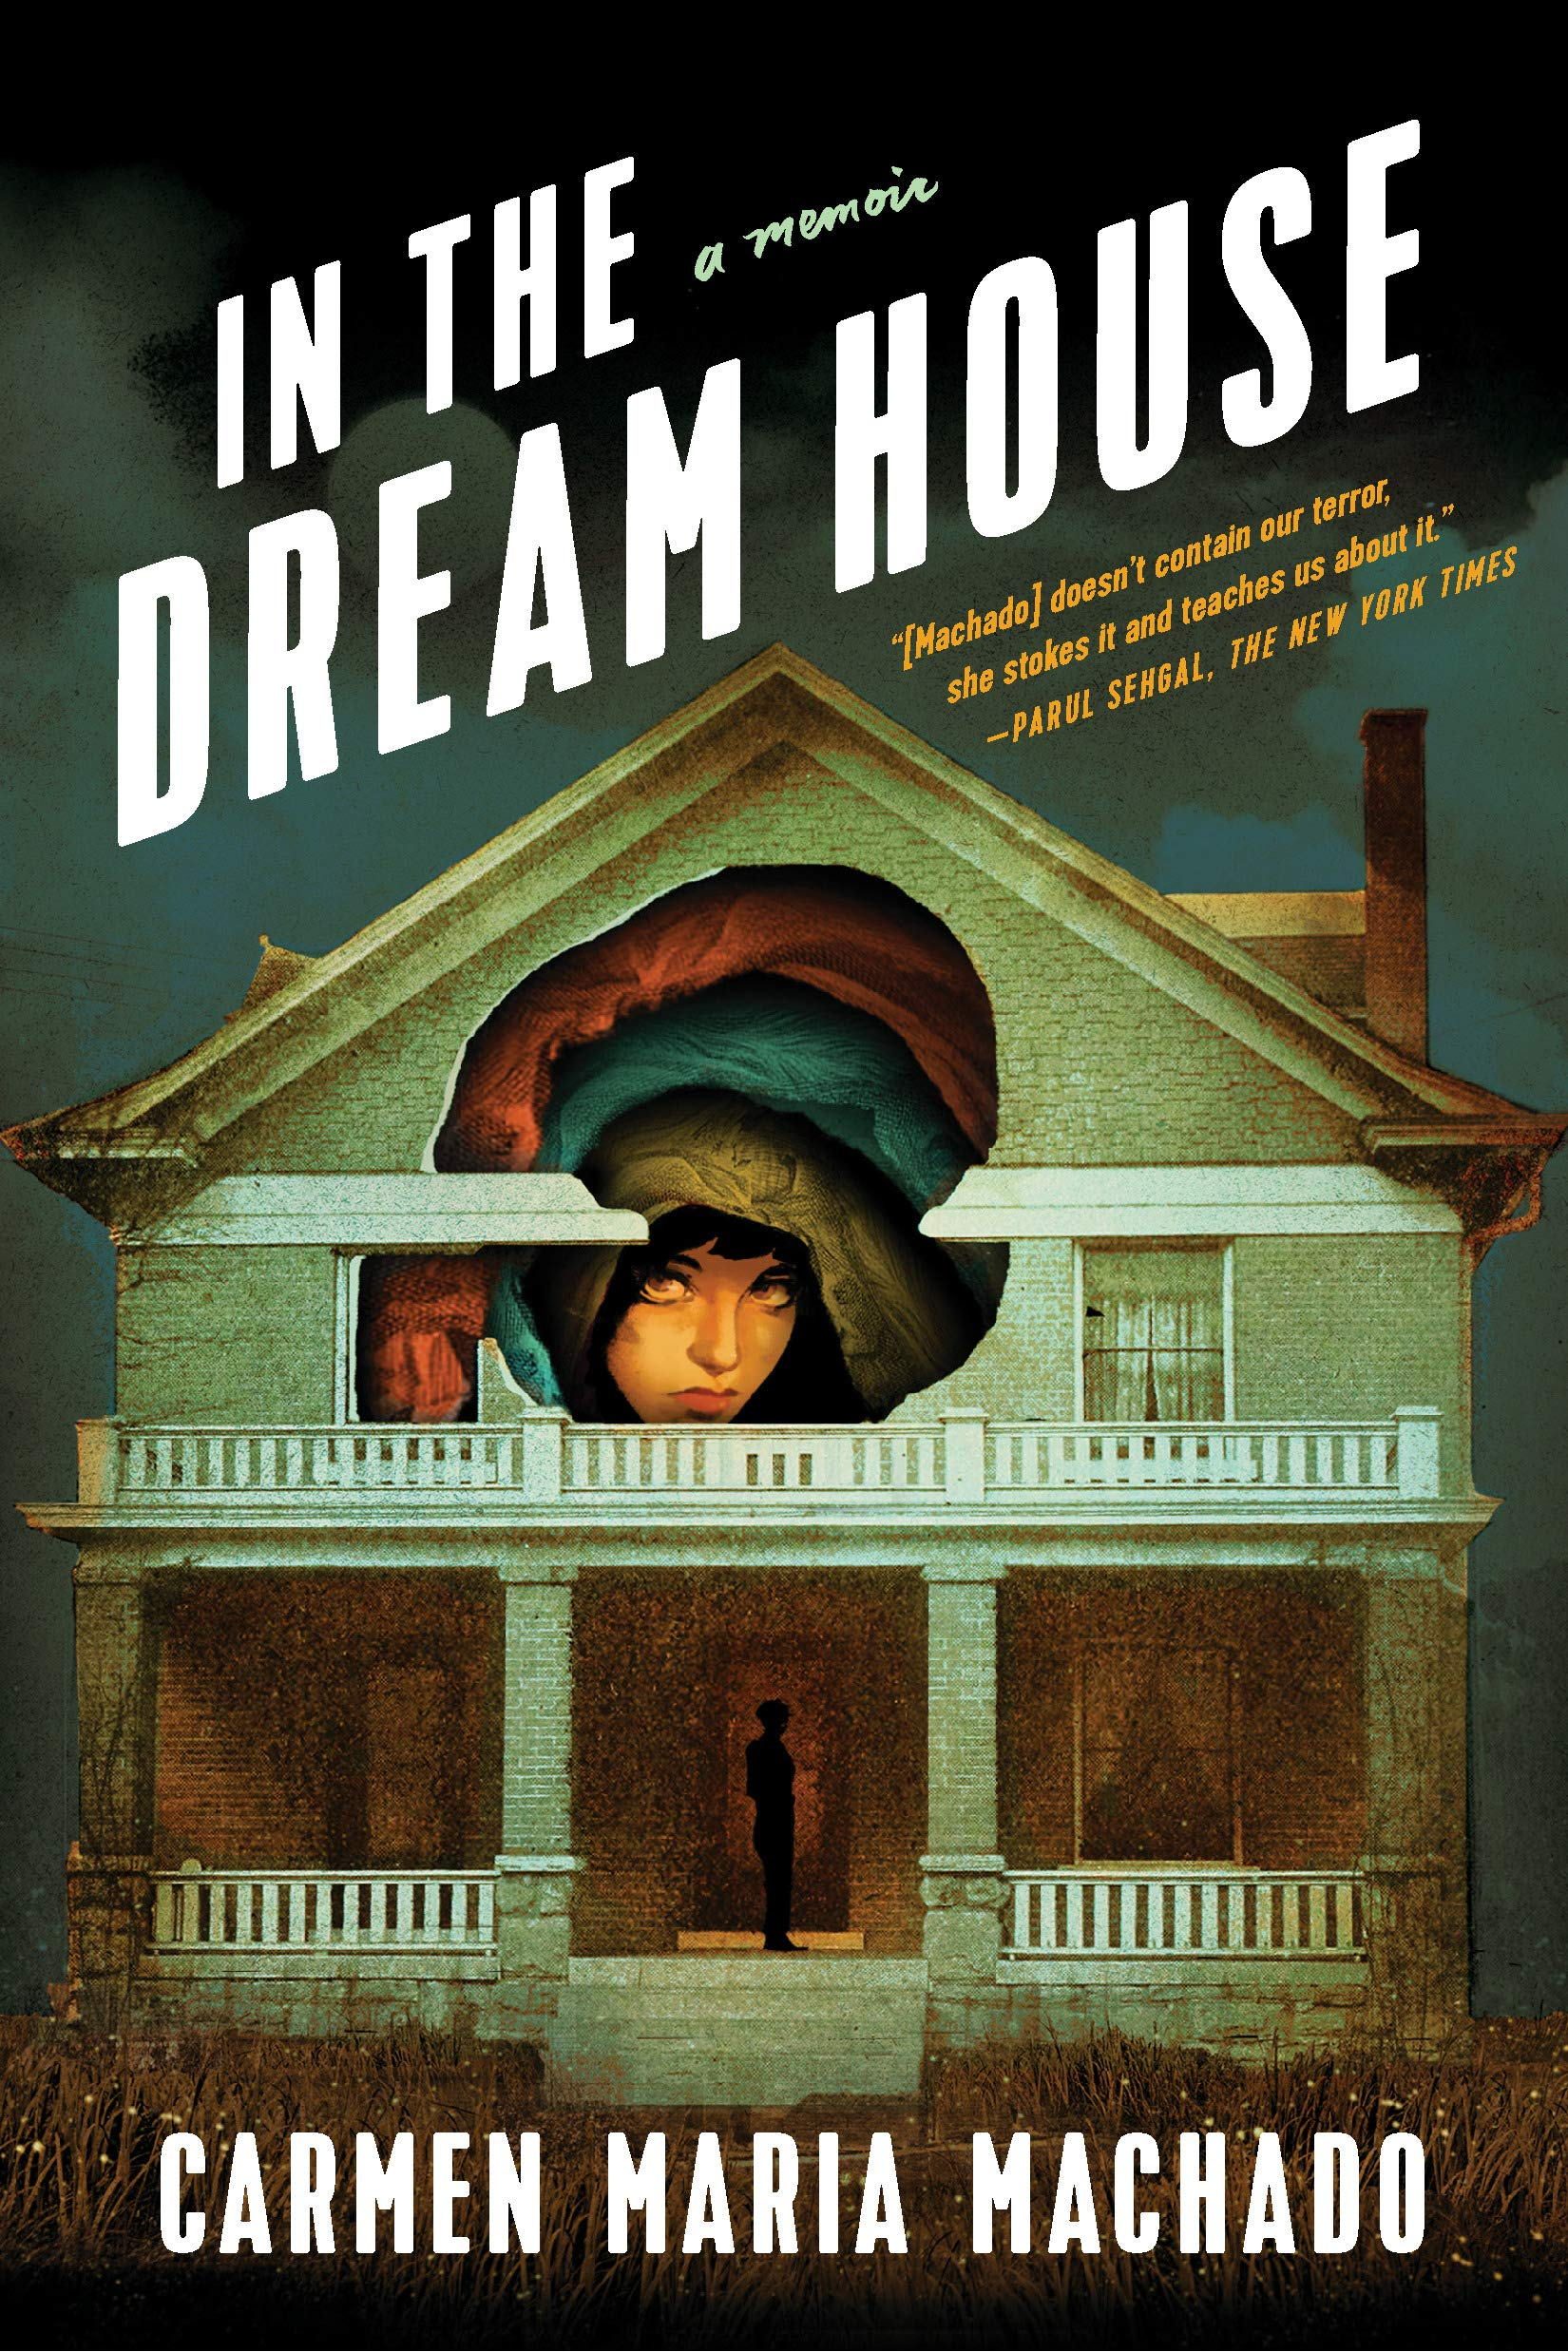 Buy In the Dream House: A Memoir Book Online at Low Prices in India | In  the Dream House: A Memoir Reviews & Ratings - Amazon.in